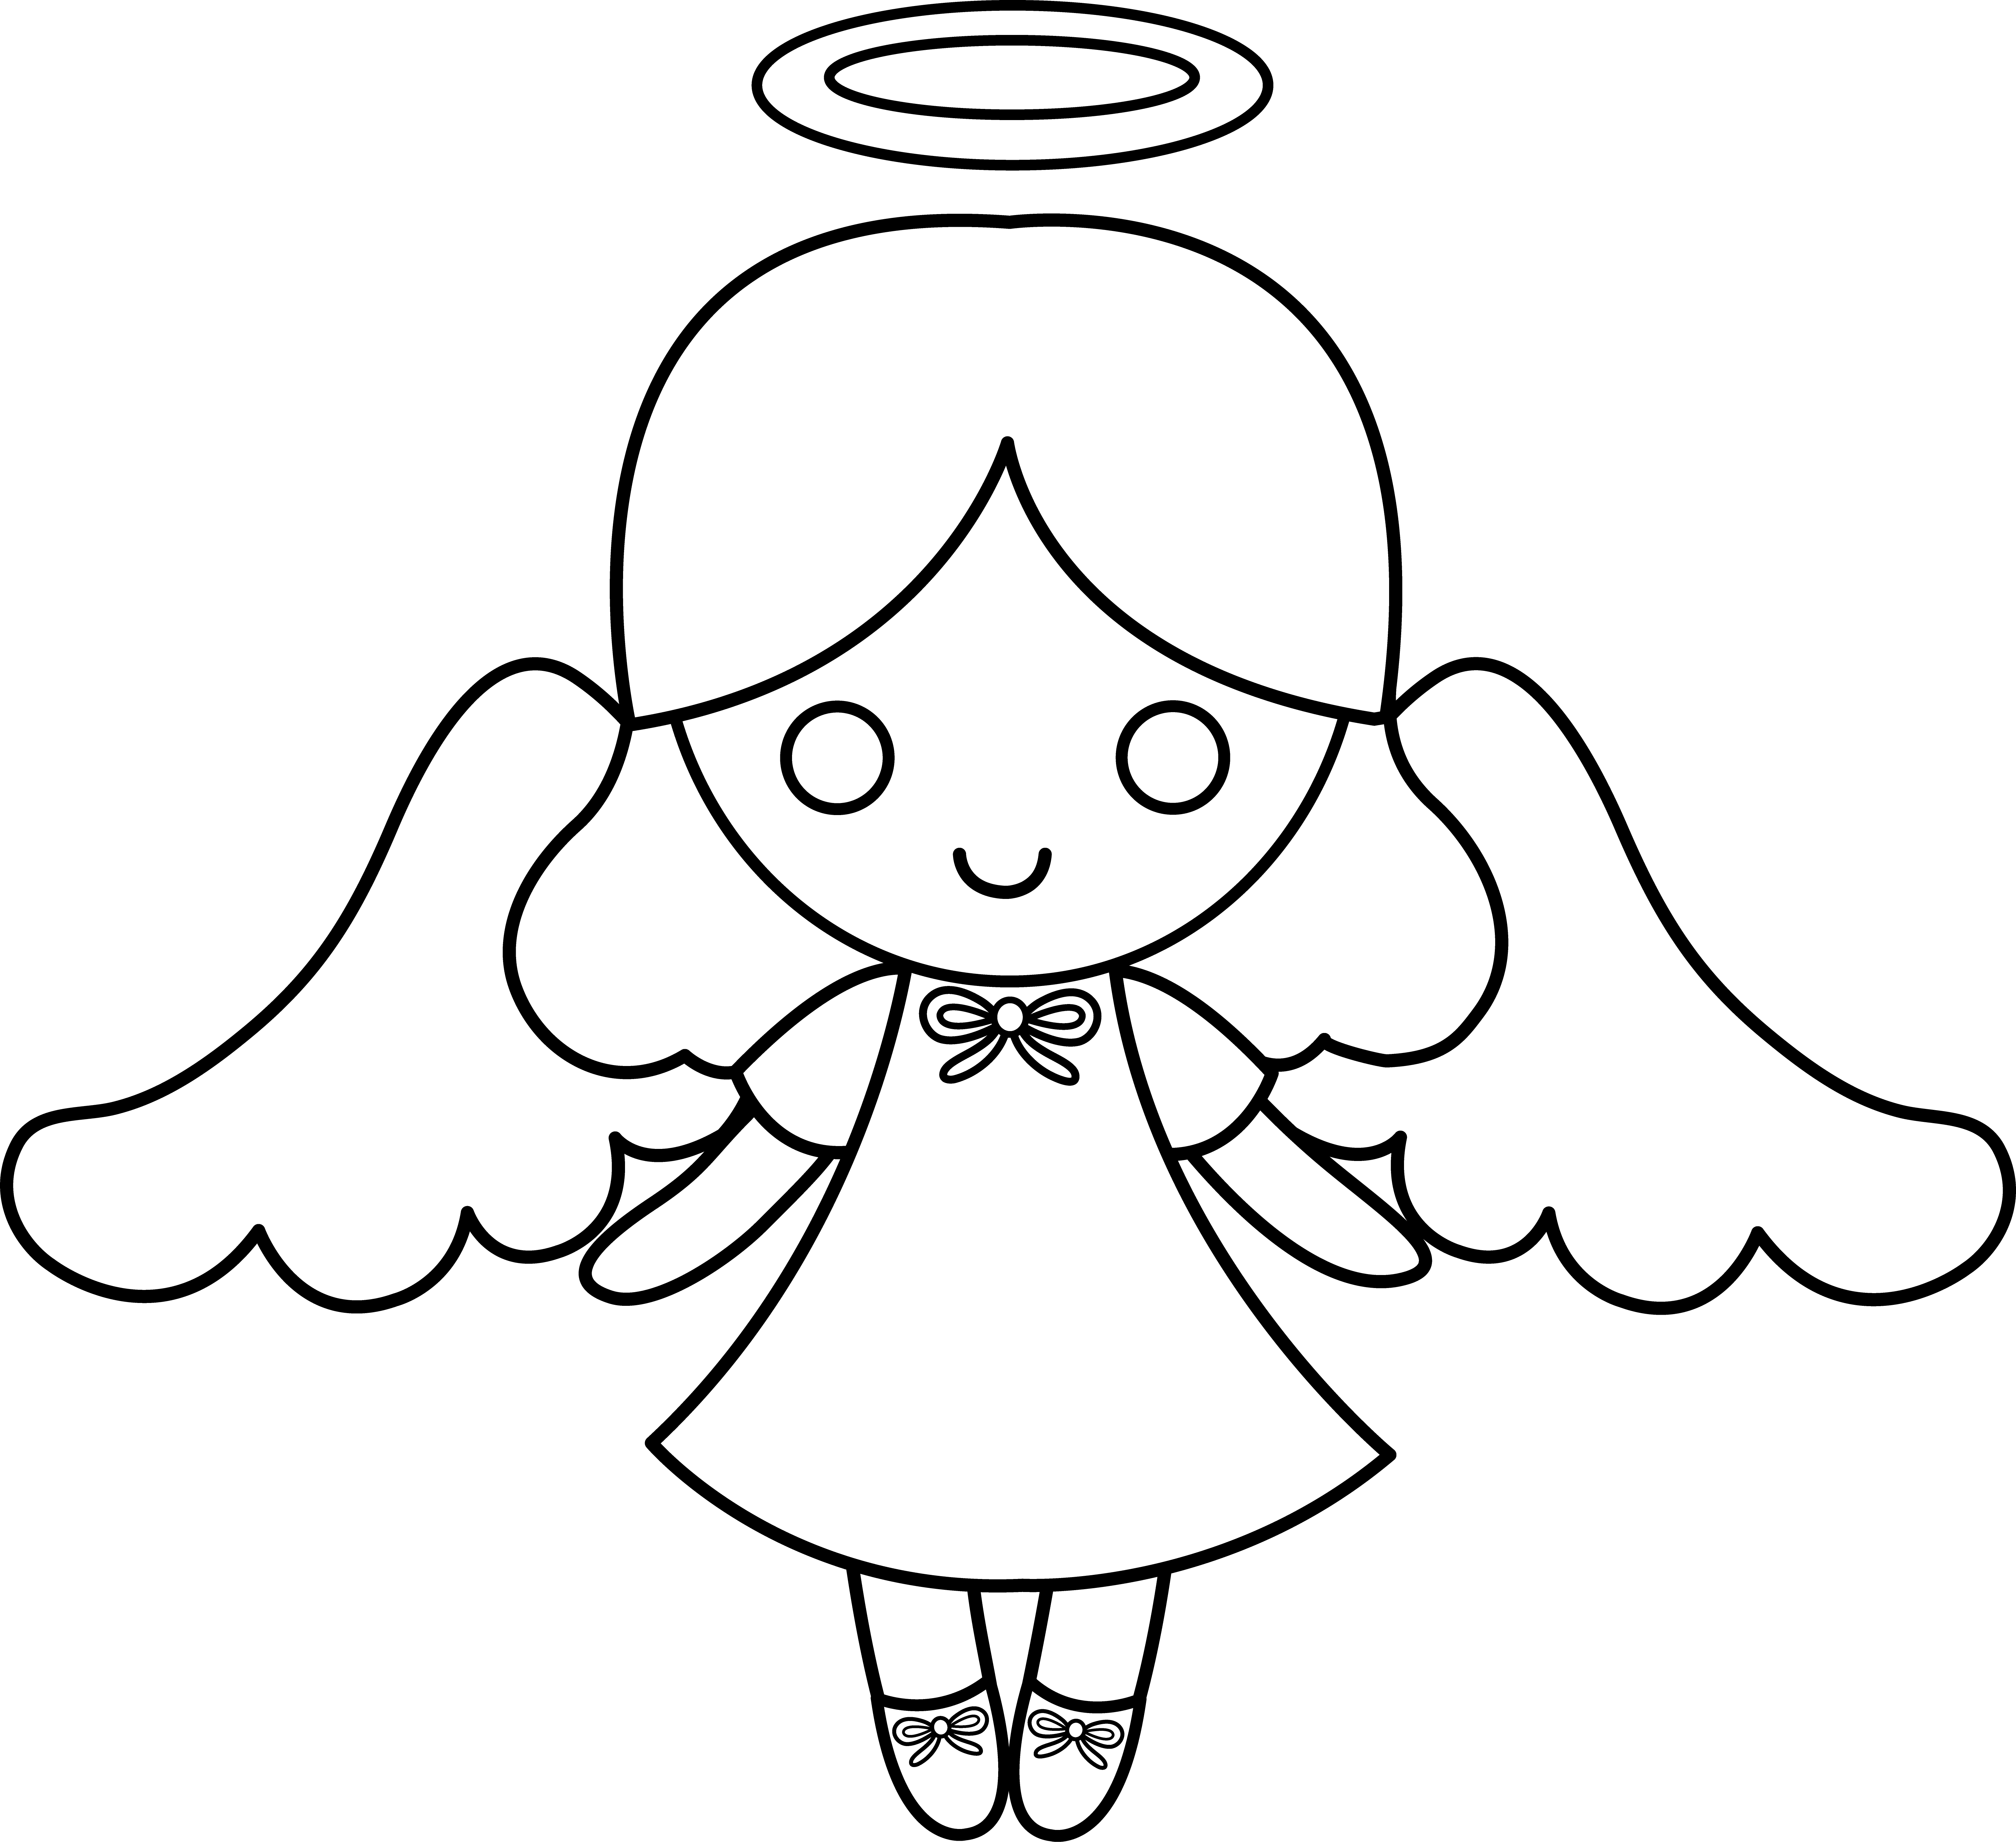 African american angel clipart free image black and white Free Little Angel Clipart, Download Free Clip Art, Free Clip Art on ... image black and white